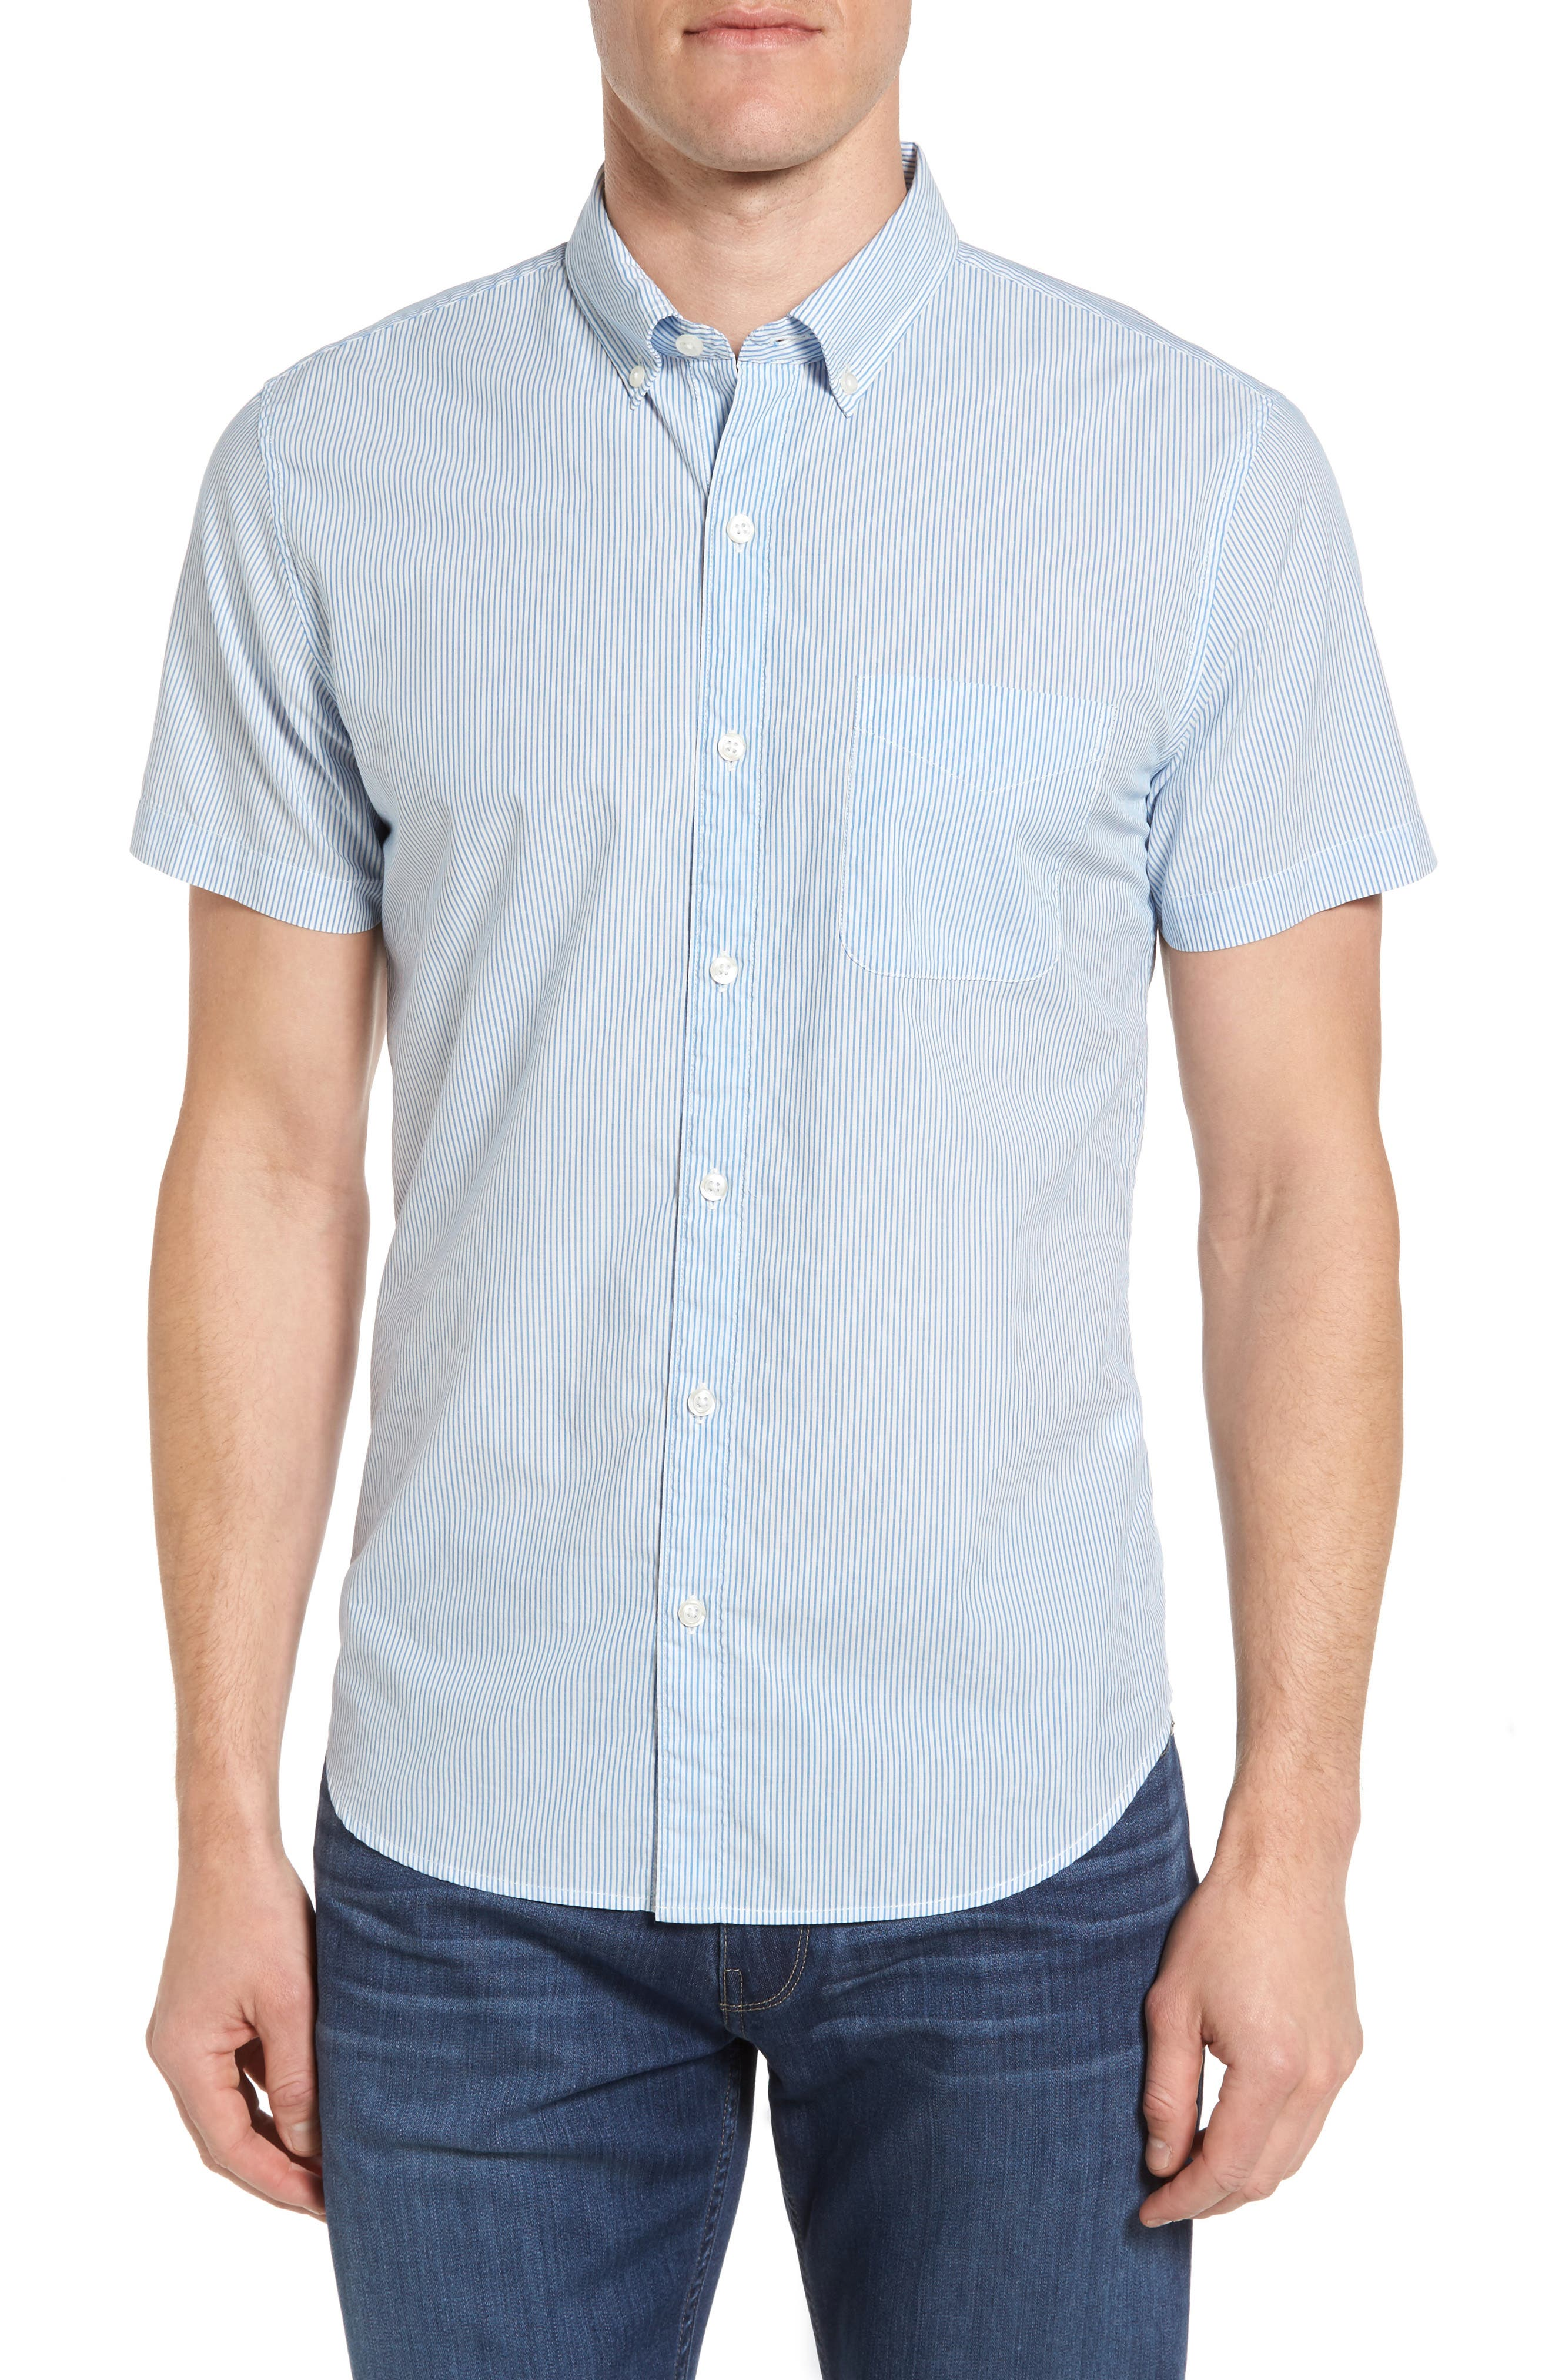 Bonobos Slim Fit Short Sleeve Vertical Stripe Sport Shirt